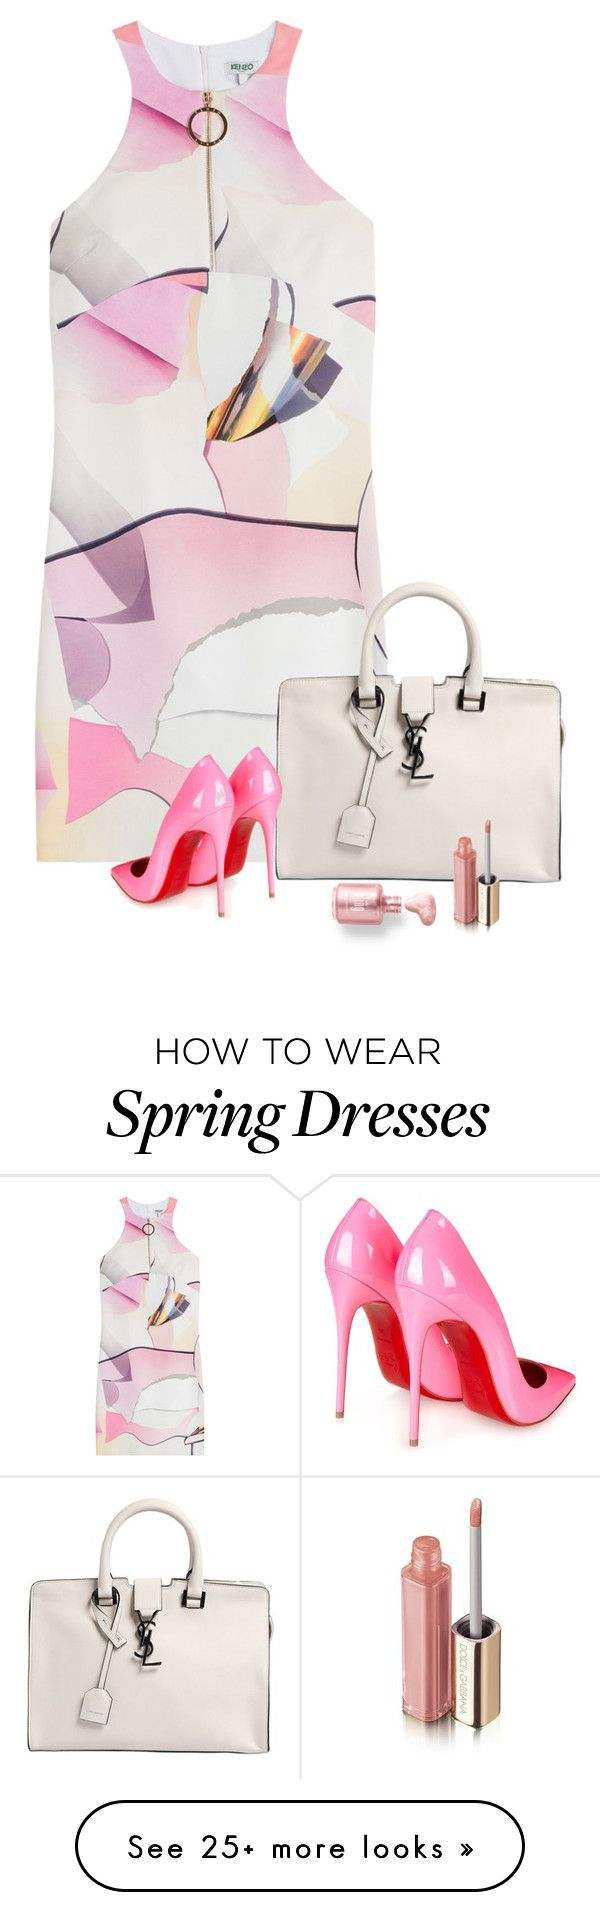 """Spring"" by lisa-holt on Polyvore featuring Mode, Kenzo, Yves Saint Laurent, Christian Louboutin und Dolce&Gabbana"